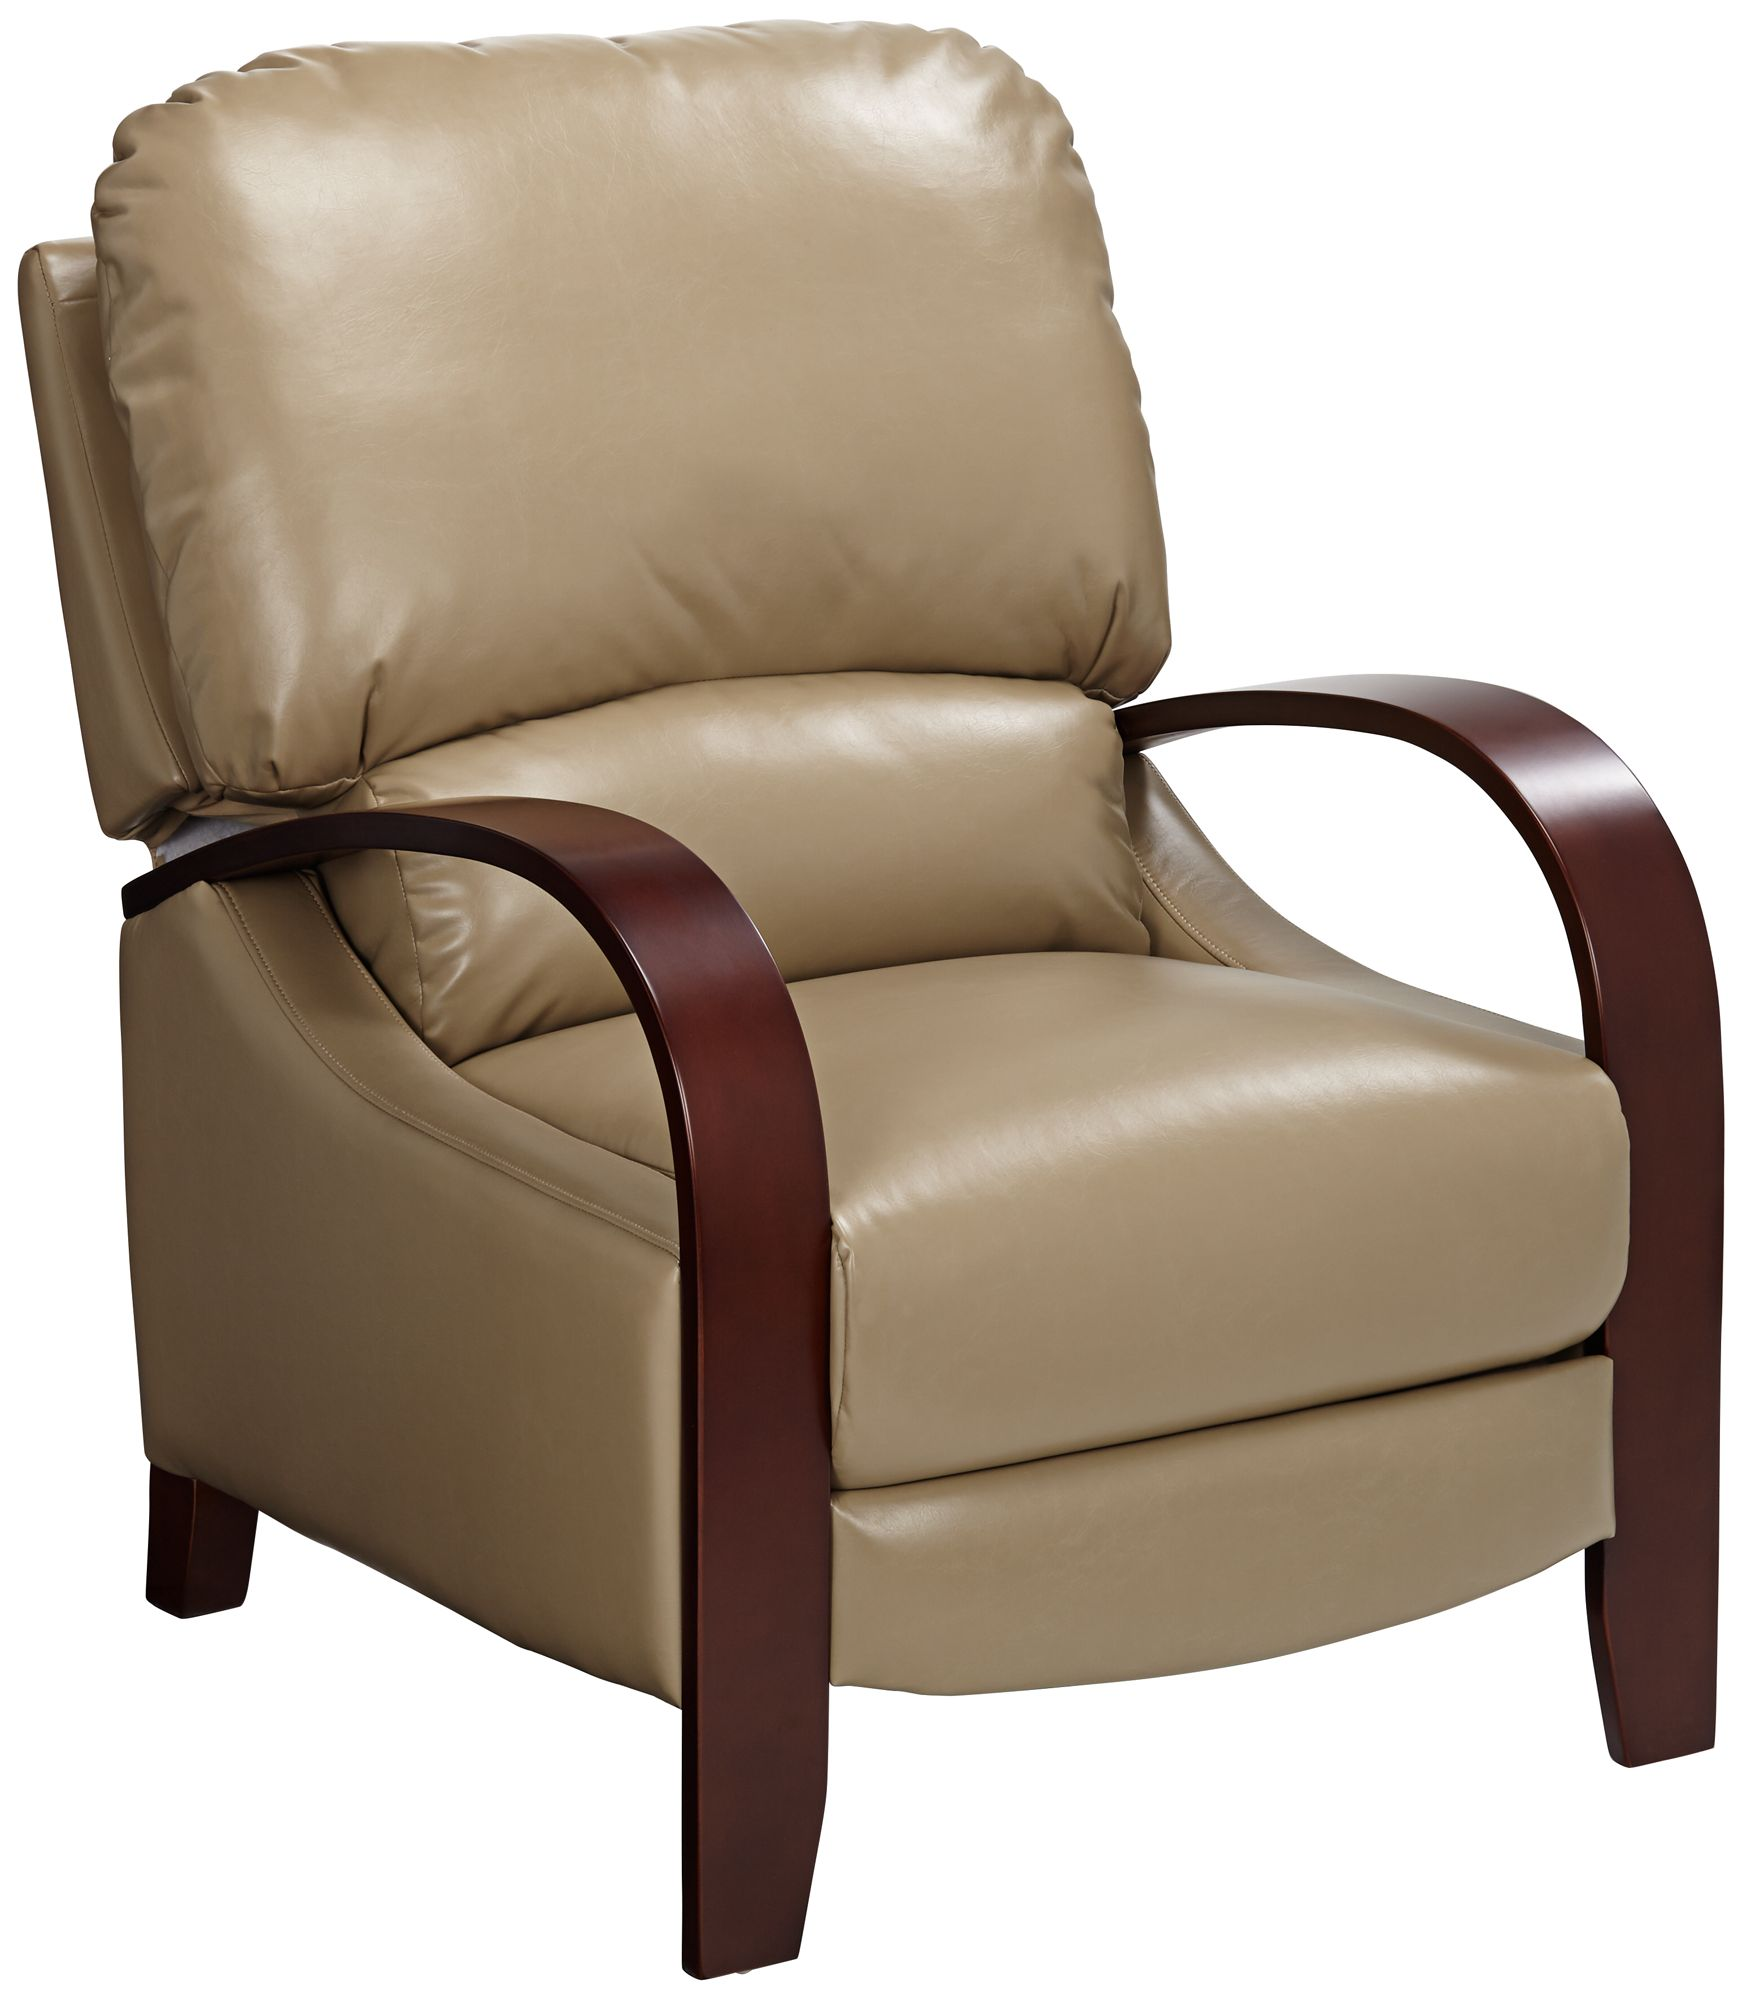 Awesome Cooper Celestial Oat Faux Leather 3 Way Recliner Chair